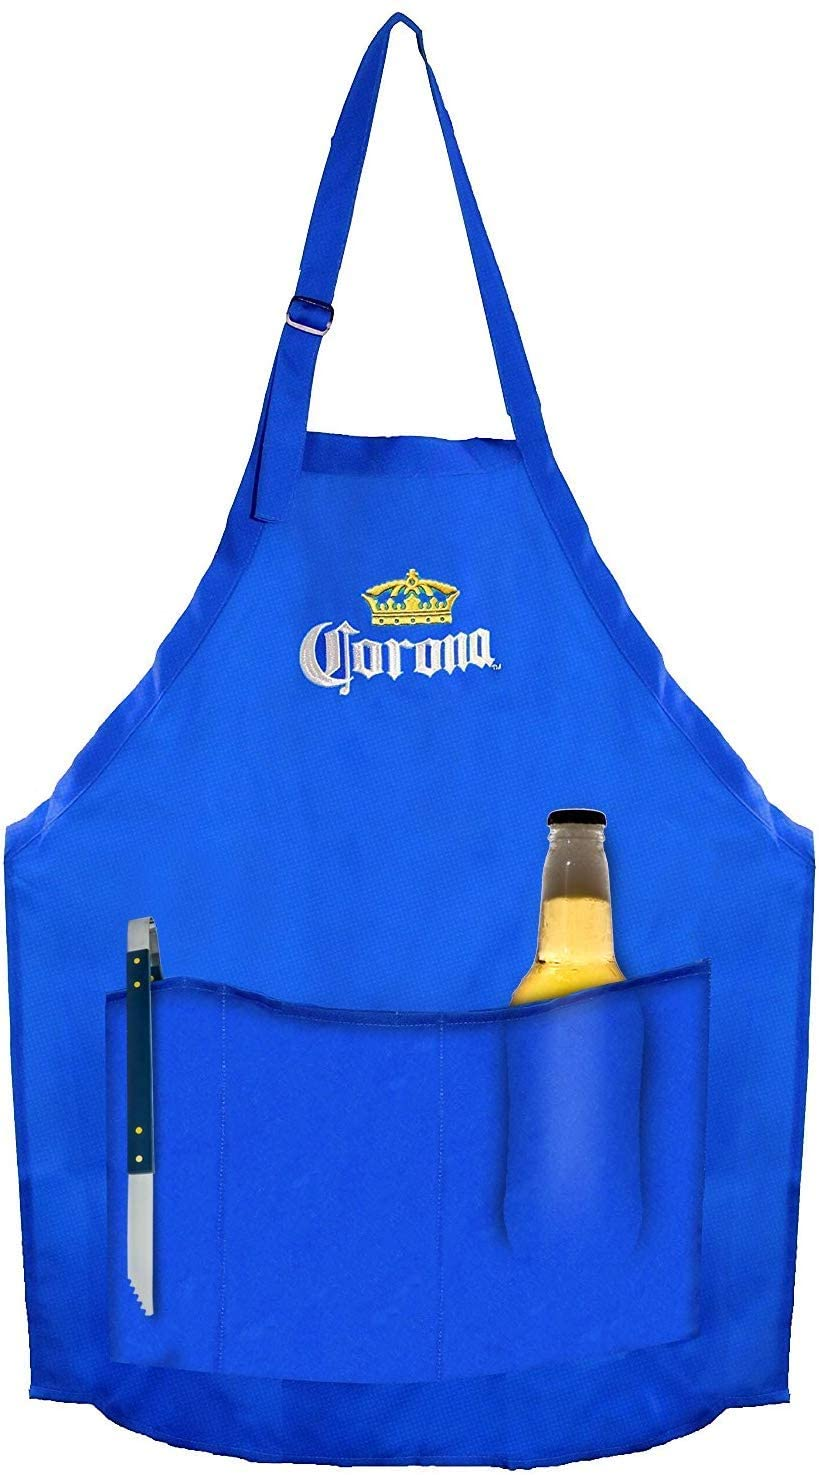 Bbq Aprons for Women and Men with Pockets Grill or Kitchen Waterproof Chef Apron for Outdoor Grilling or Indoor Cooking Fits all Sizes Mens or Womens